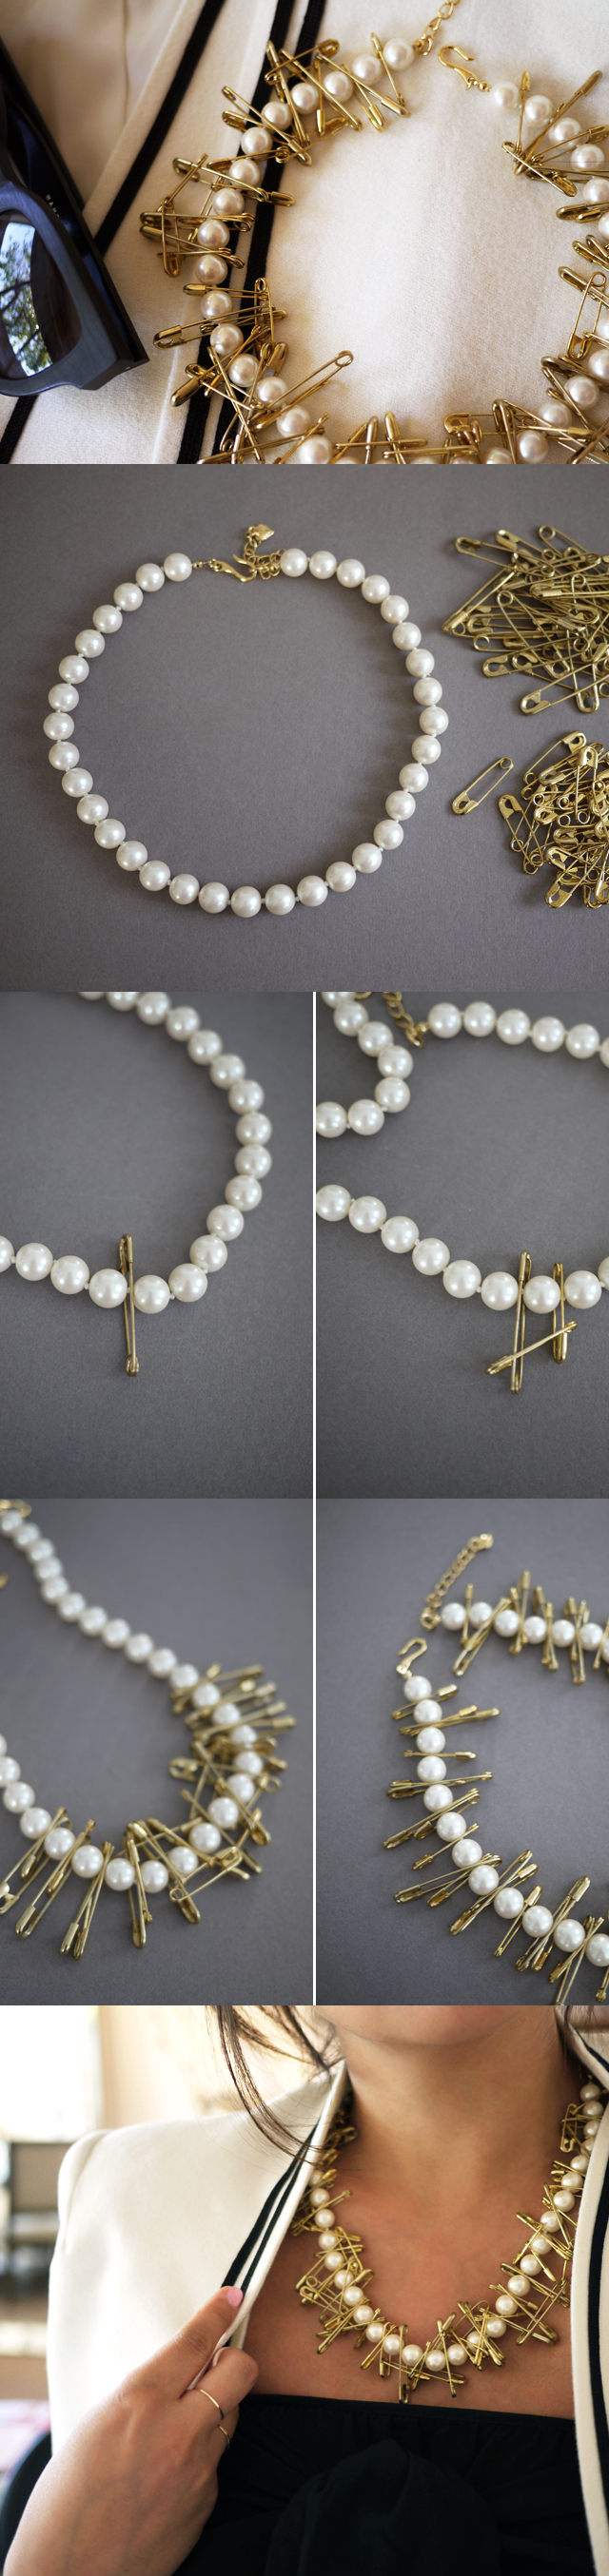 Diy the most beautiful necklace do it yourself ideas diy pearl safety pin necklace solutioingenieria Image collections